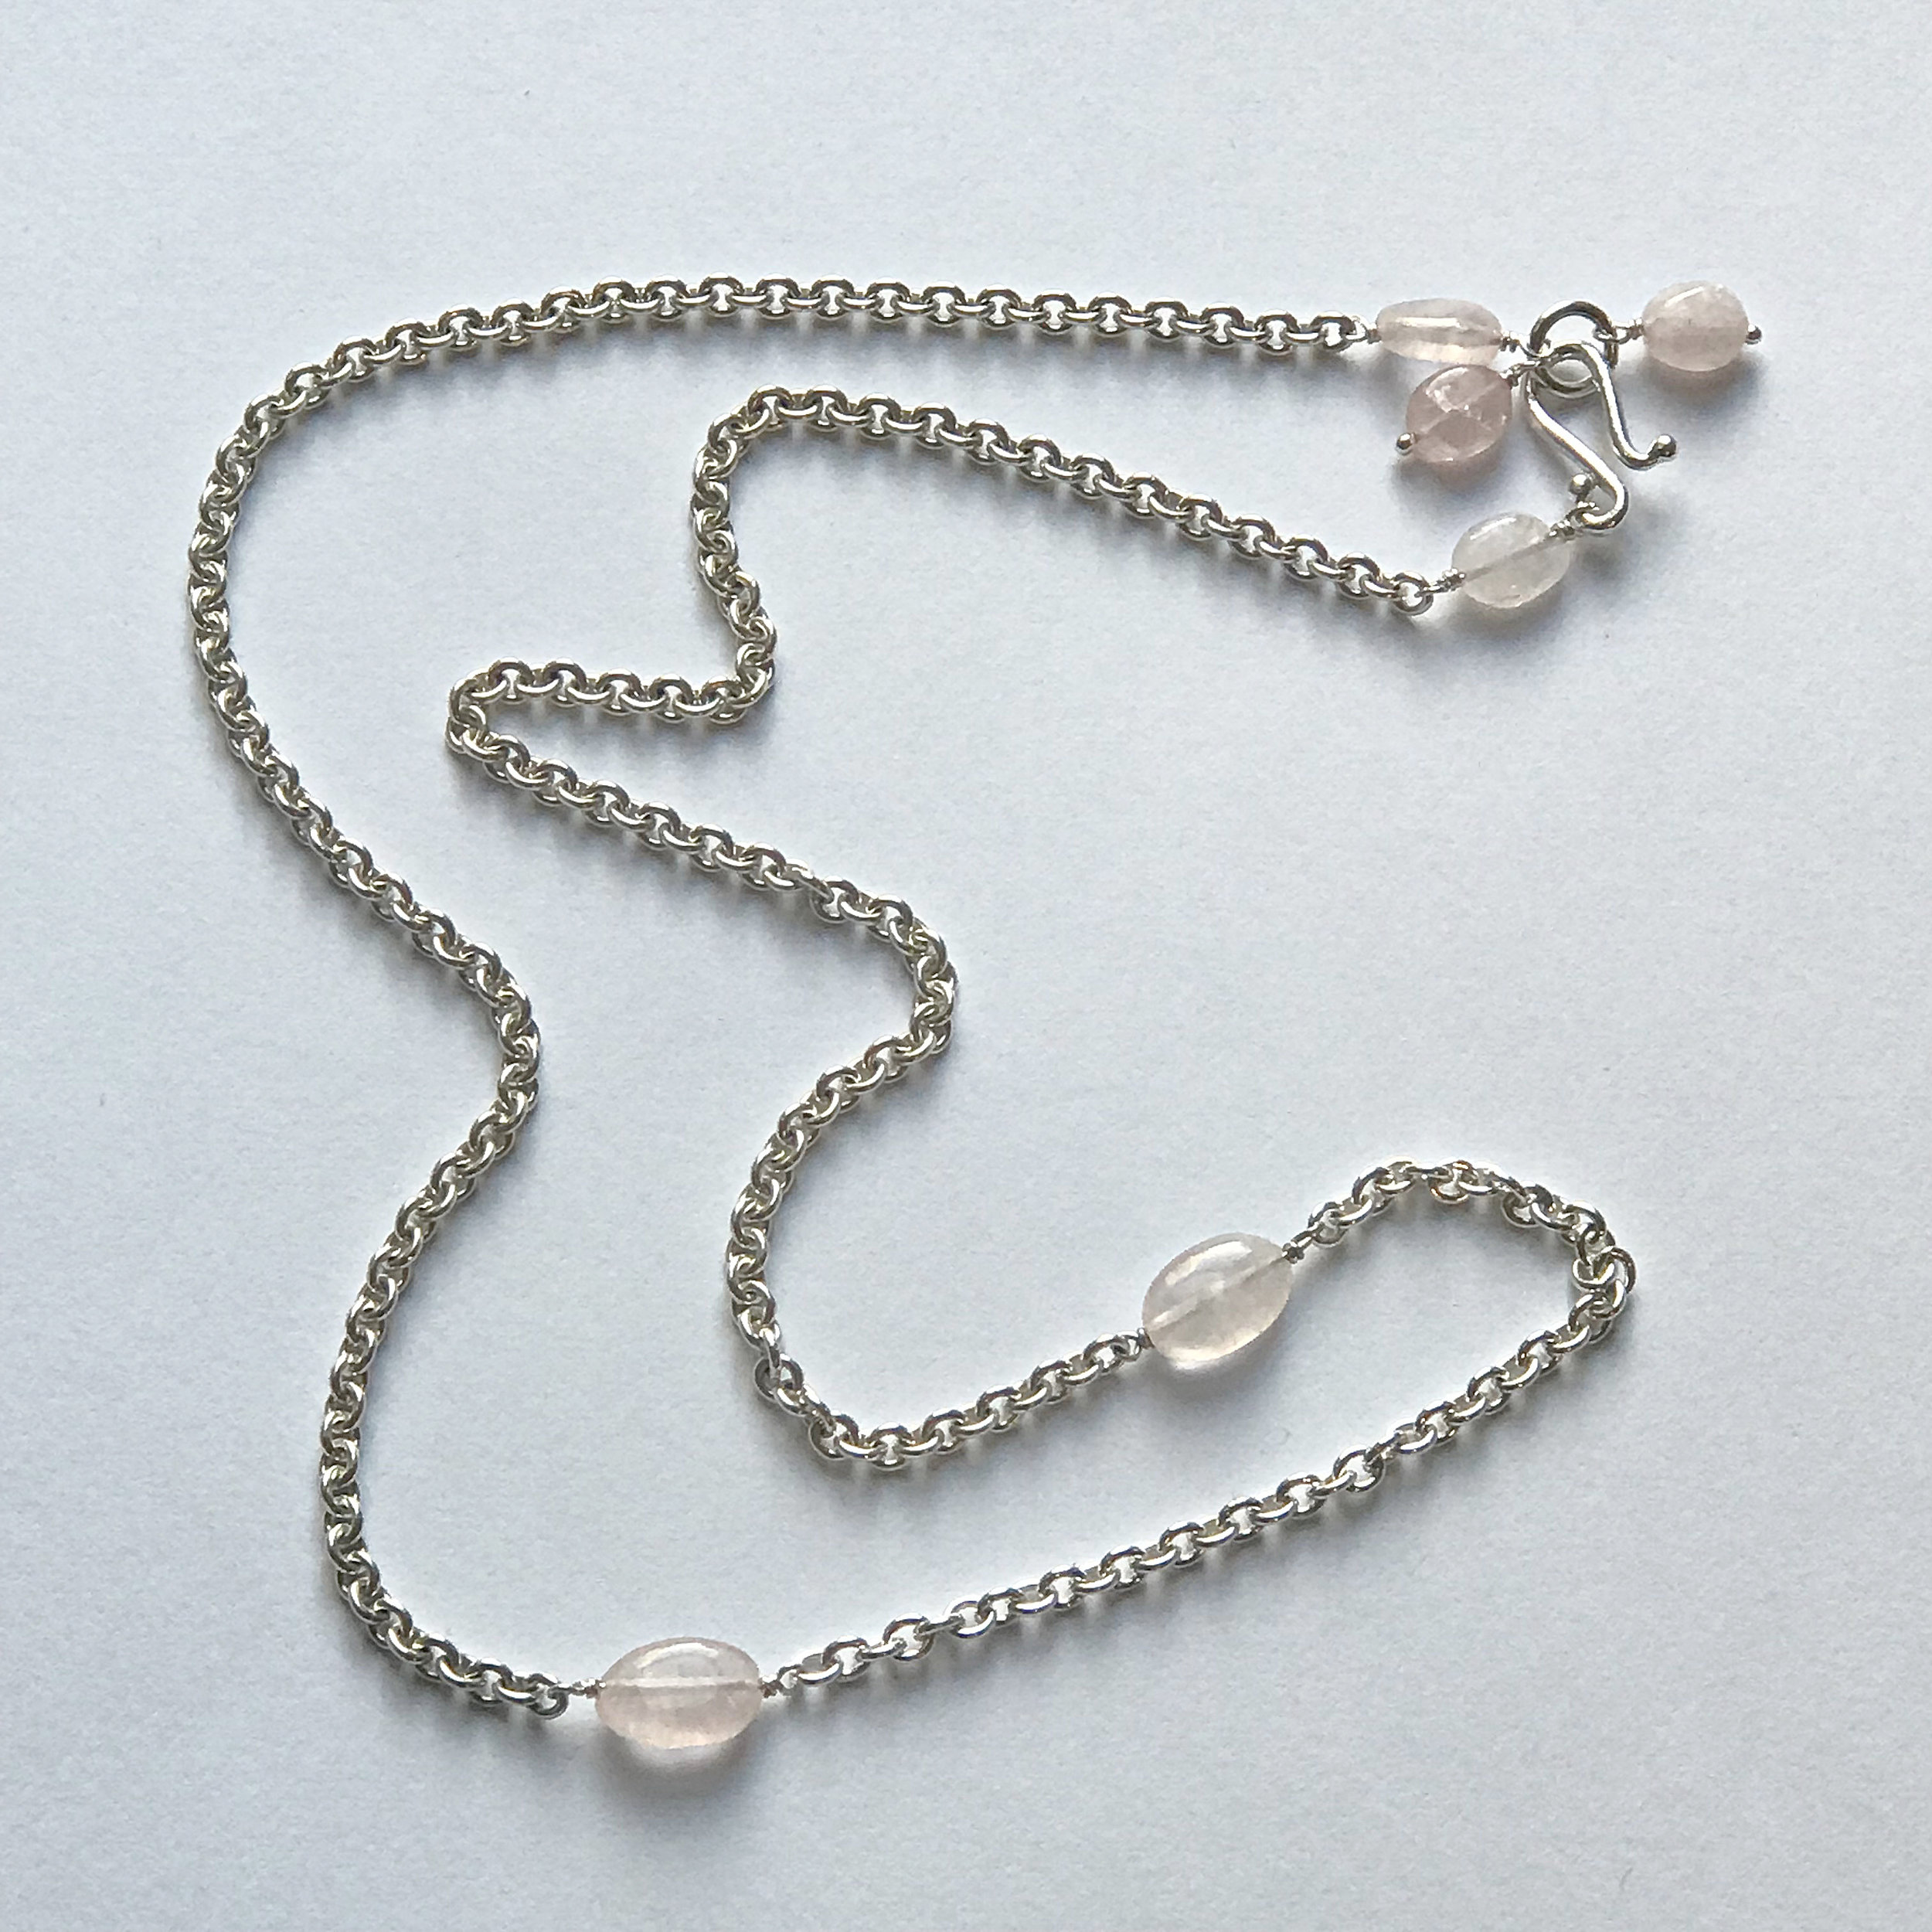 $225 Sterling Silver Rose Quartz Necklace 22""